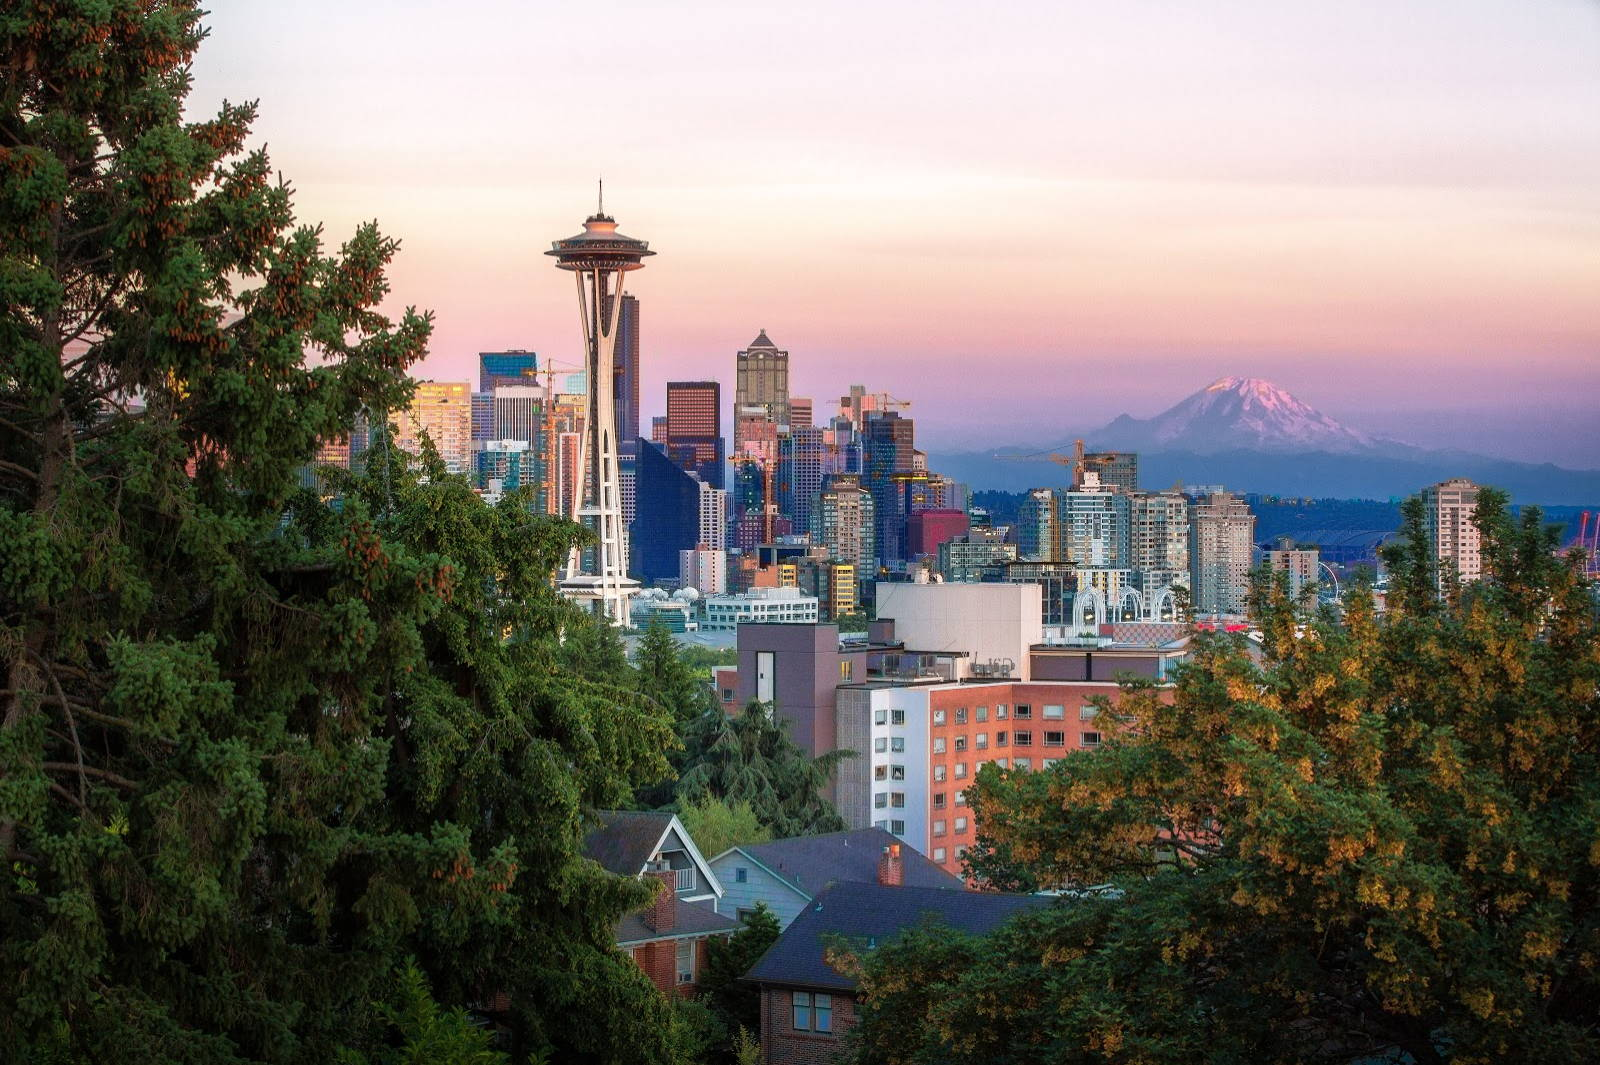 Wondering what to pack for Seattle? Here is the city skyline, complete with Mount Rainier in the background.